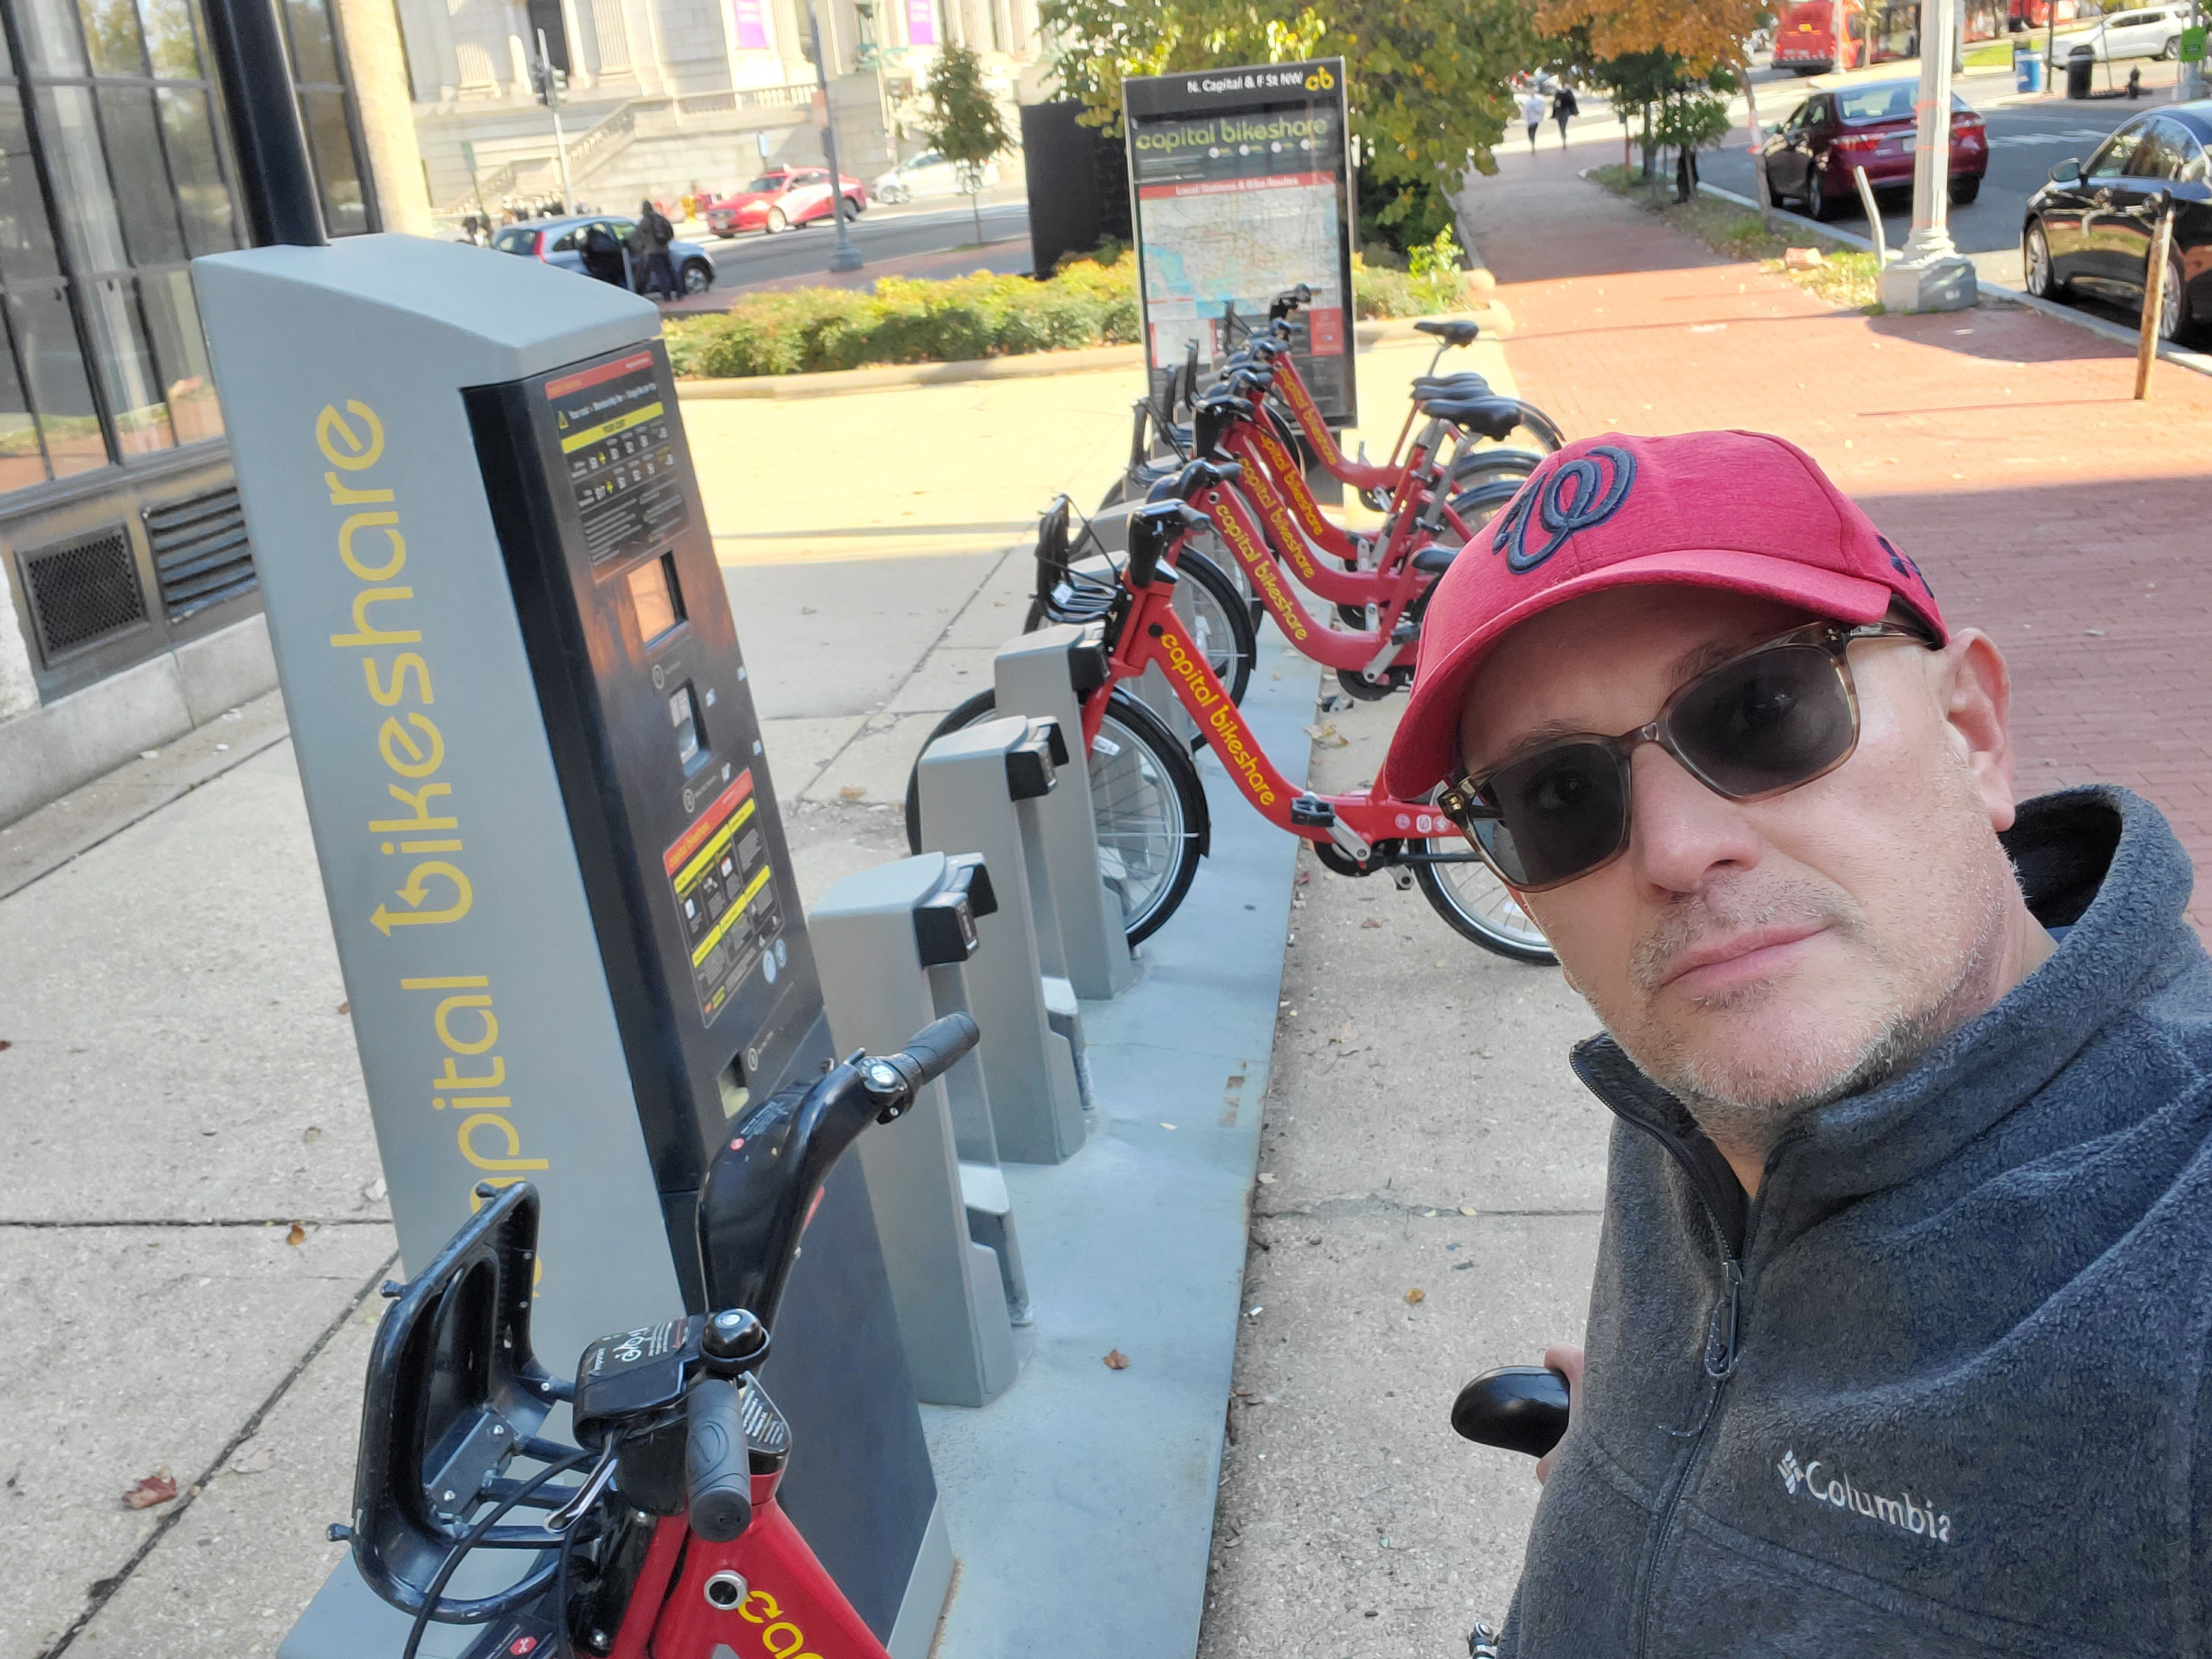 Capital Bikeshare in D.C. is one of the more successful bike share programs in the U.S.